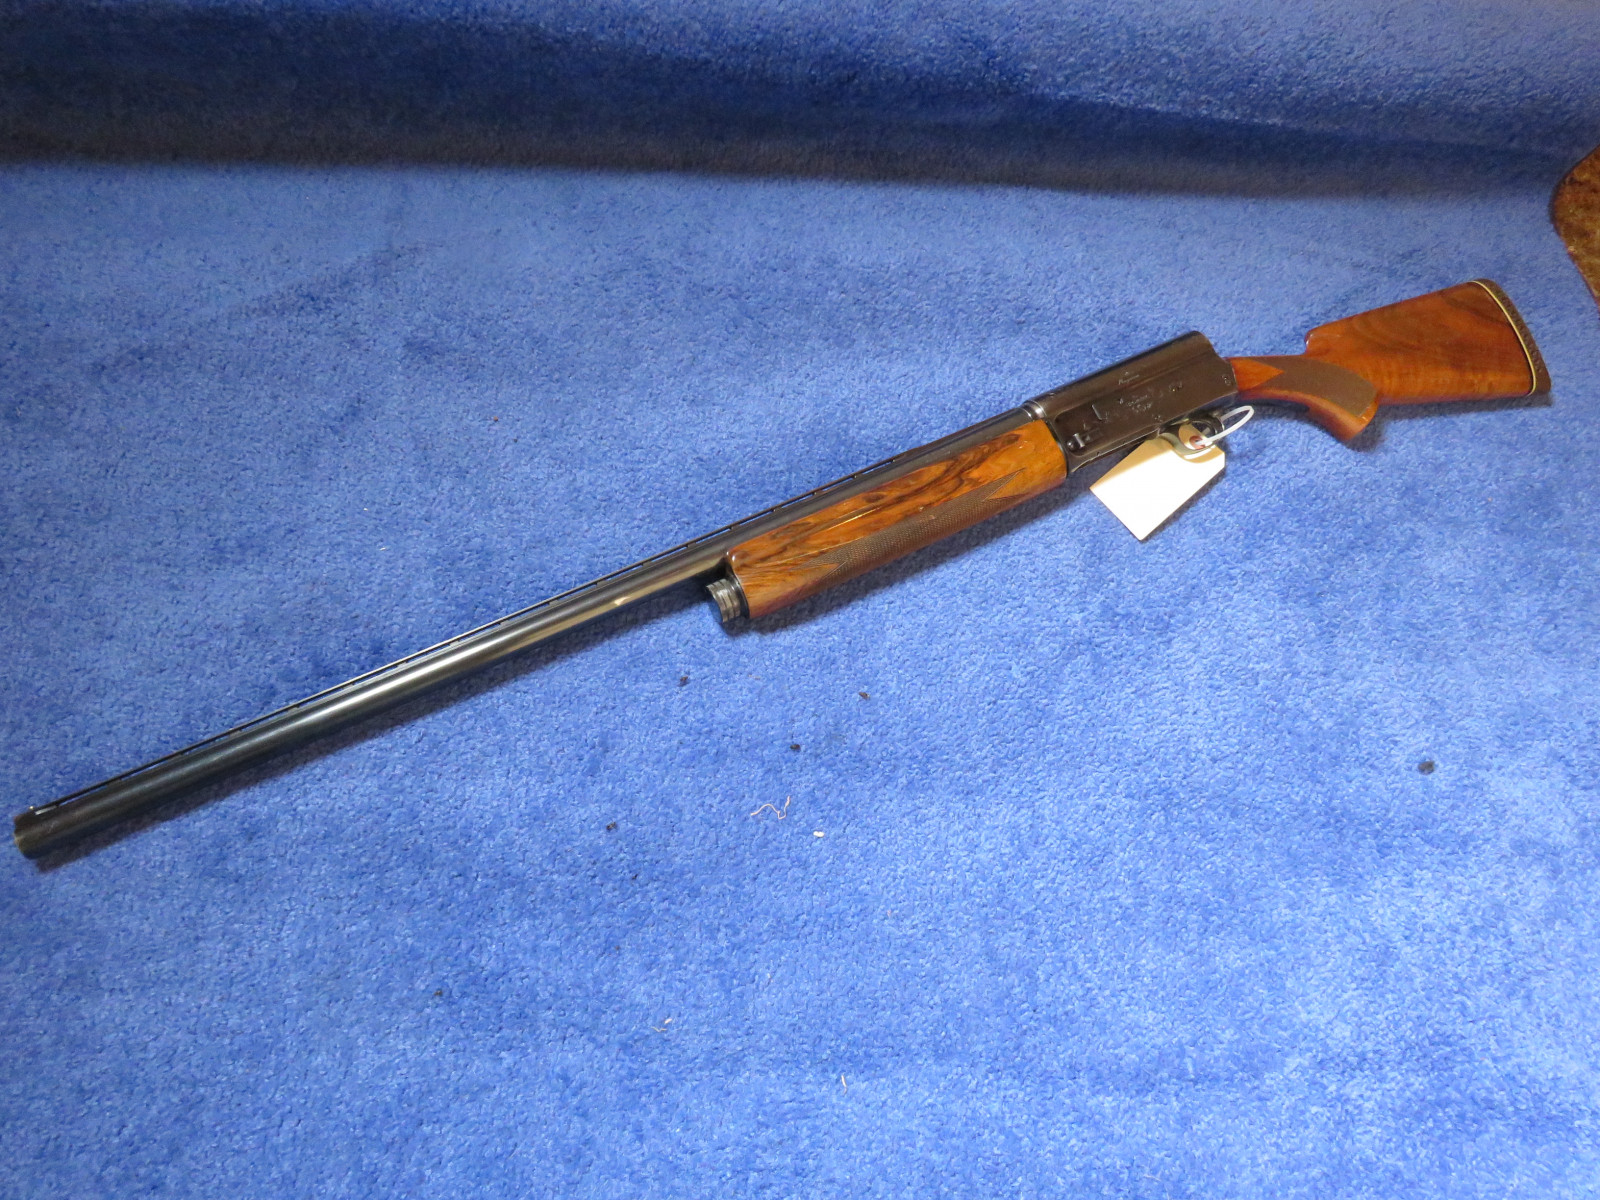 Browning Semi-automatic 12 Gauge Shotgun - Image 2